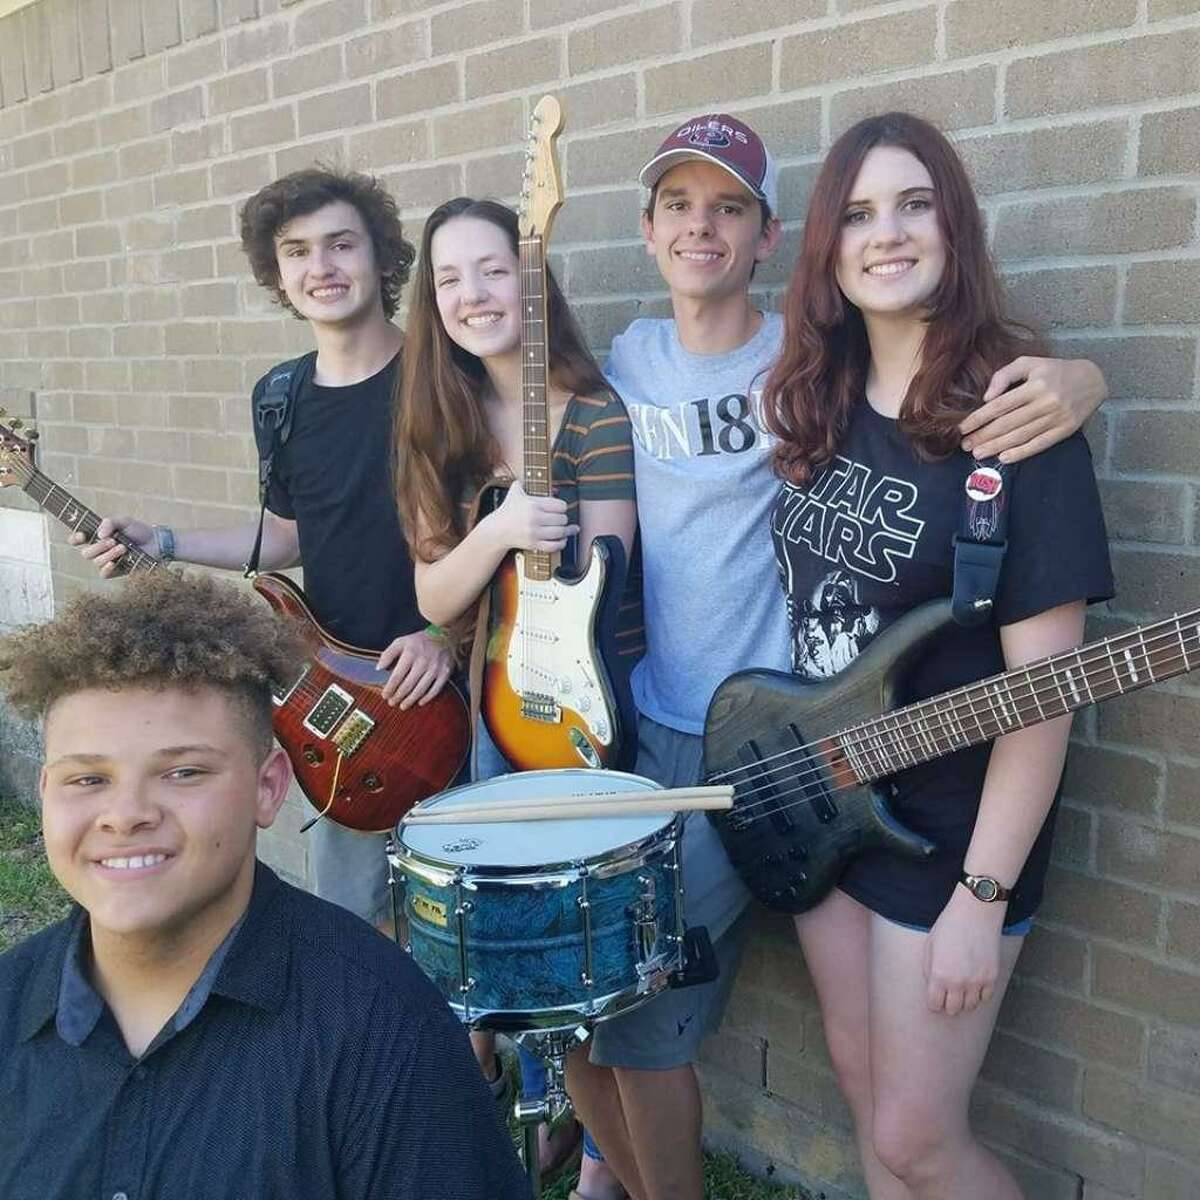 Nick and the Groove, a garage band from Clear Lake, will perform at the festival.